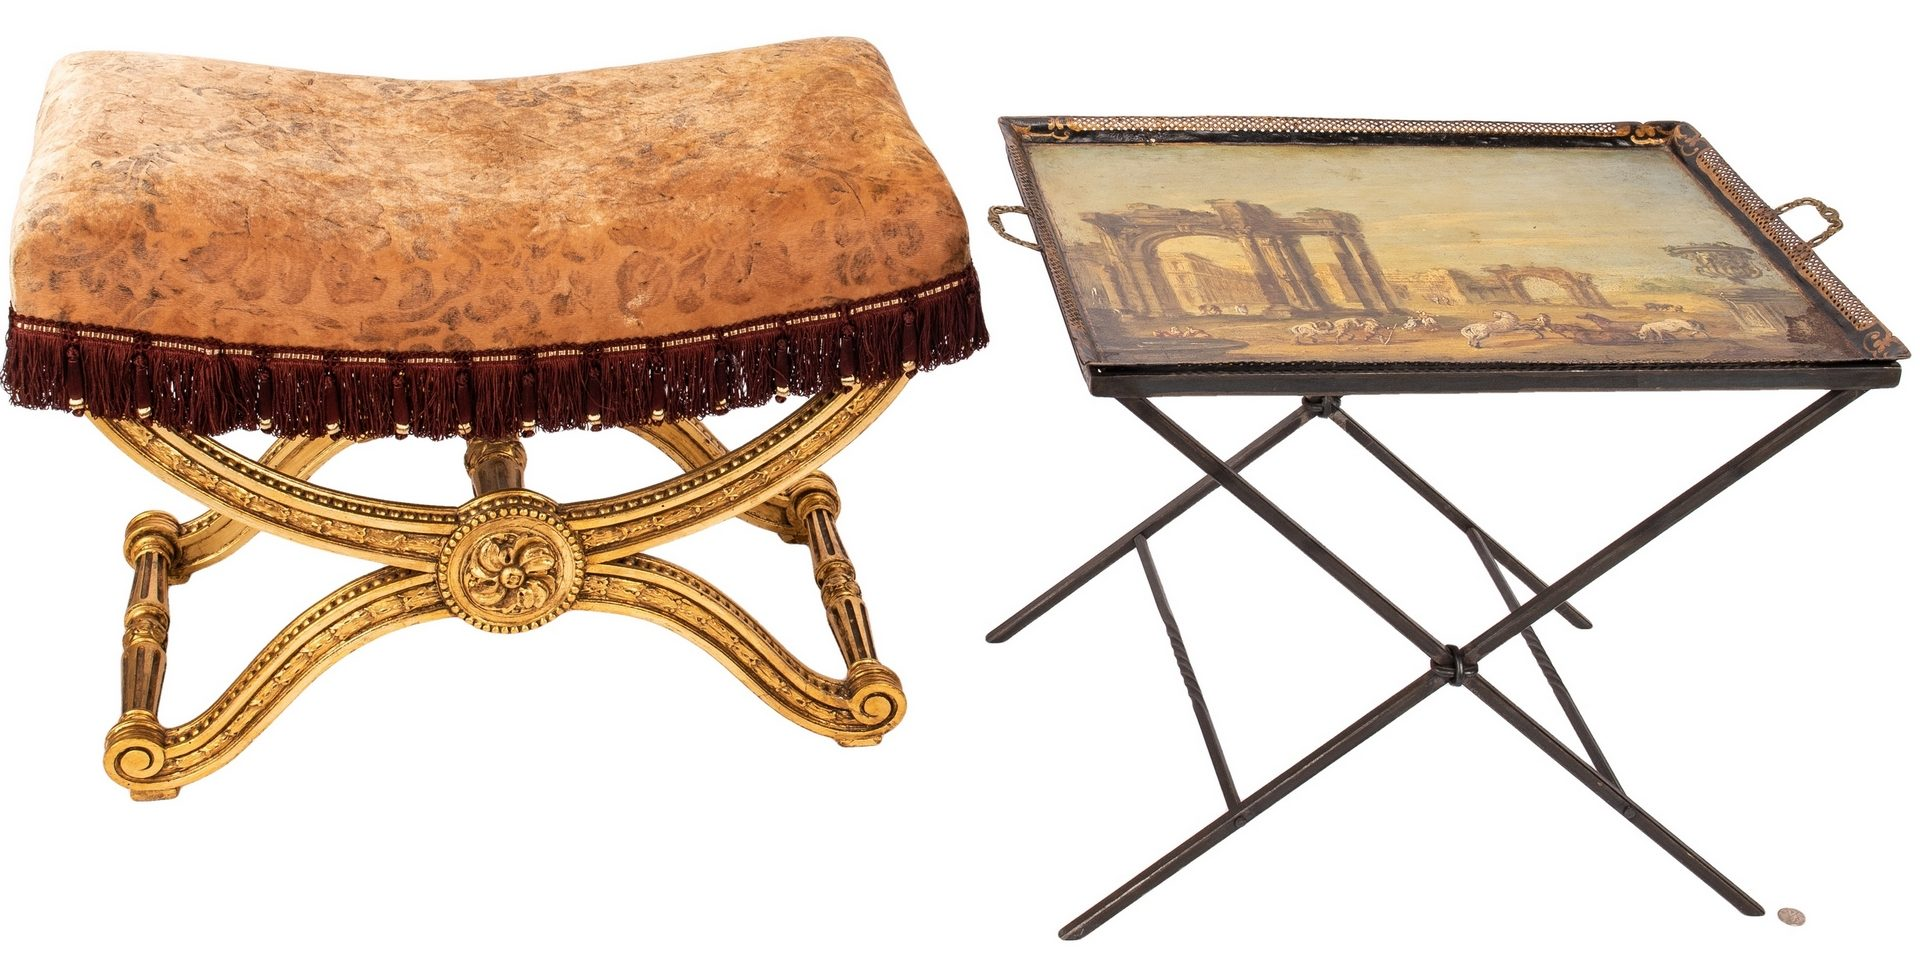 Lot 83: 2 European Furniture Items, French & Italian